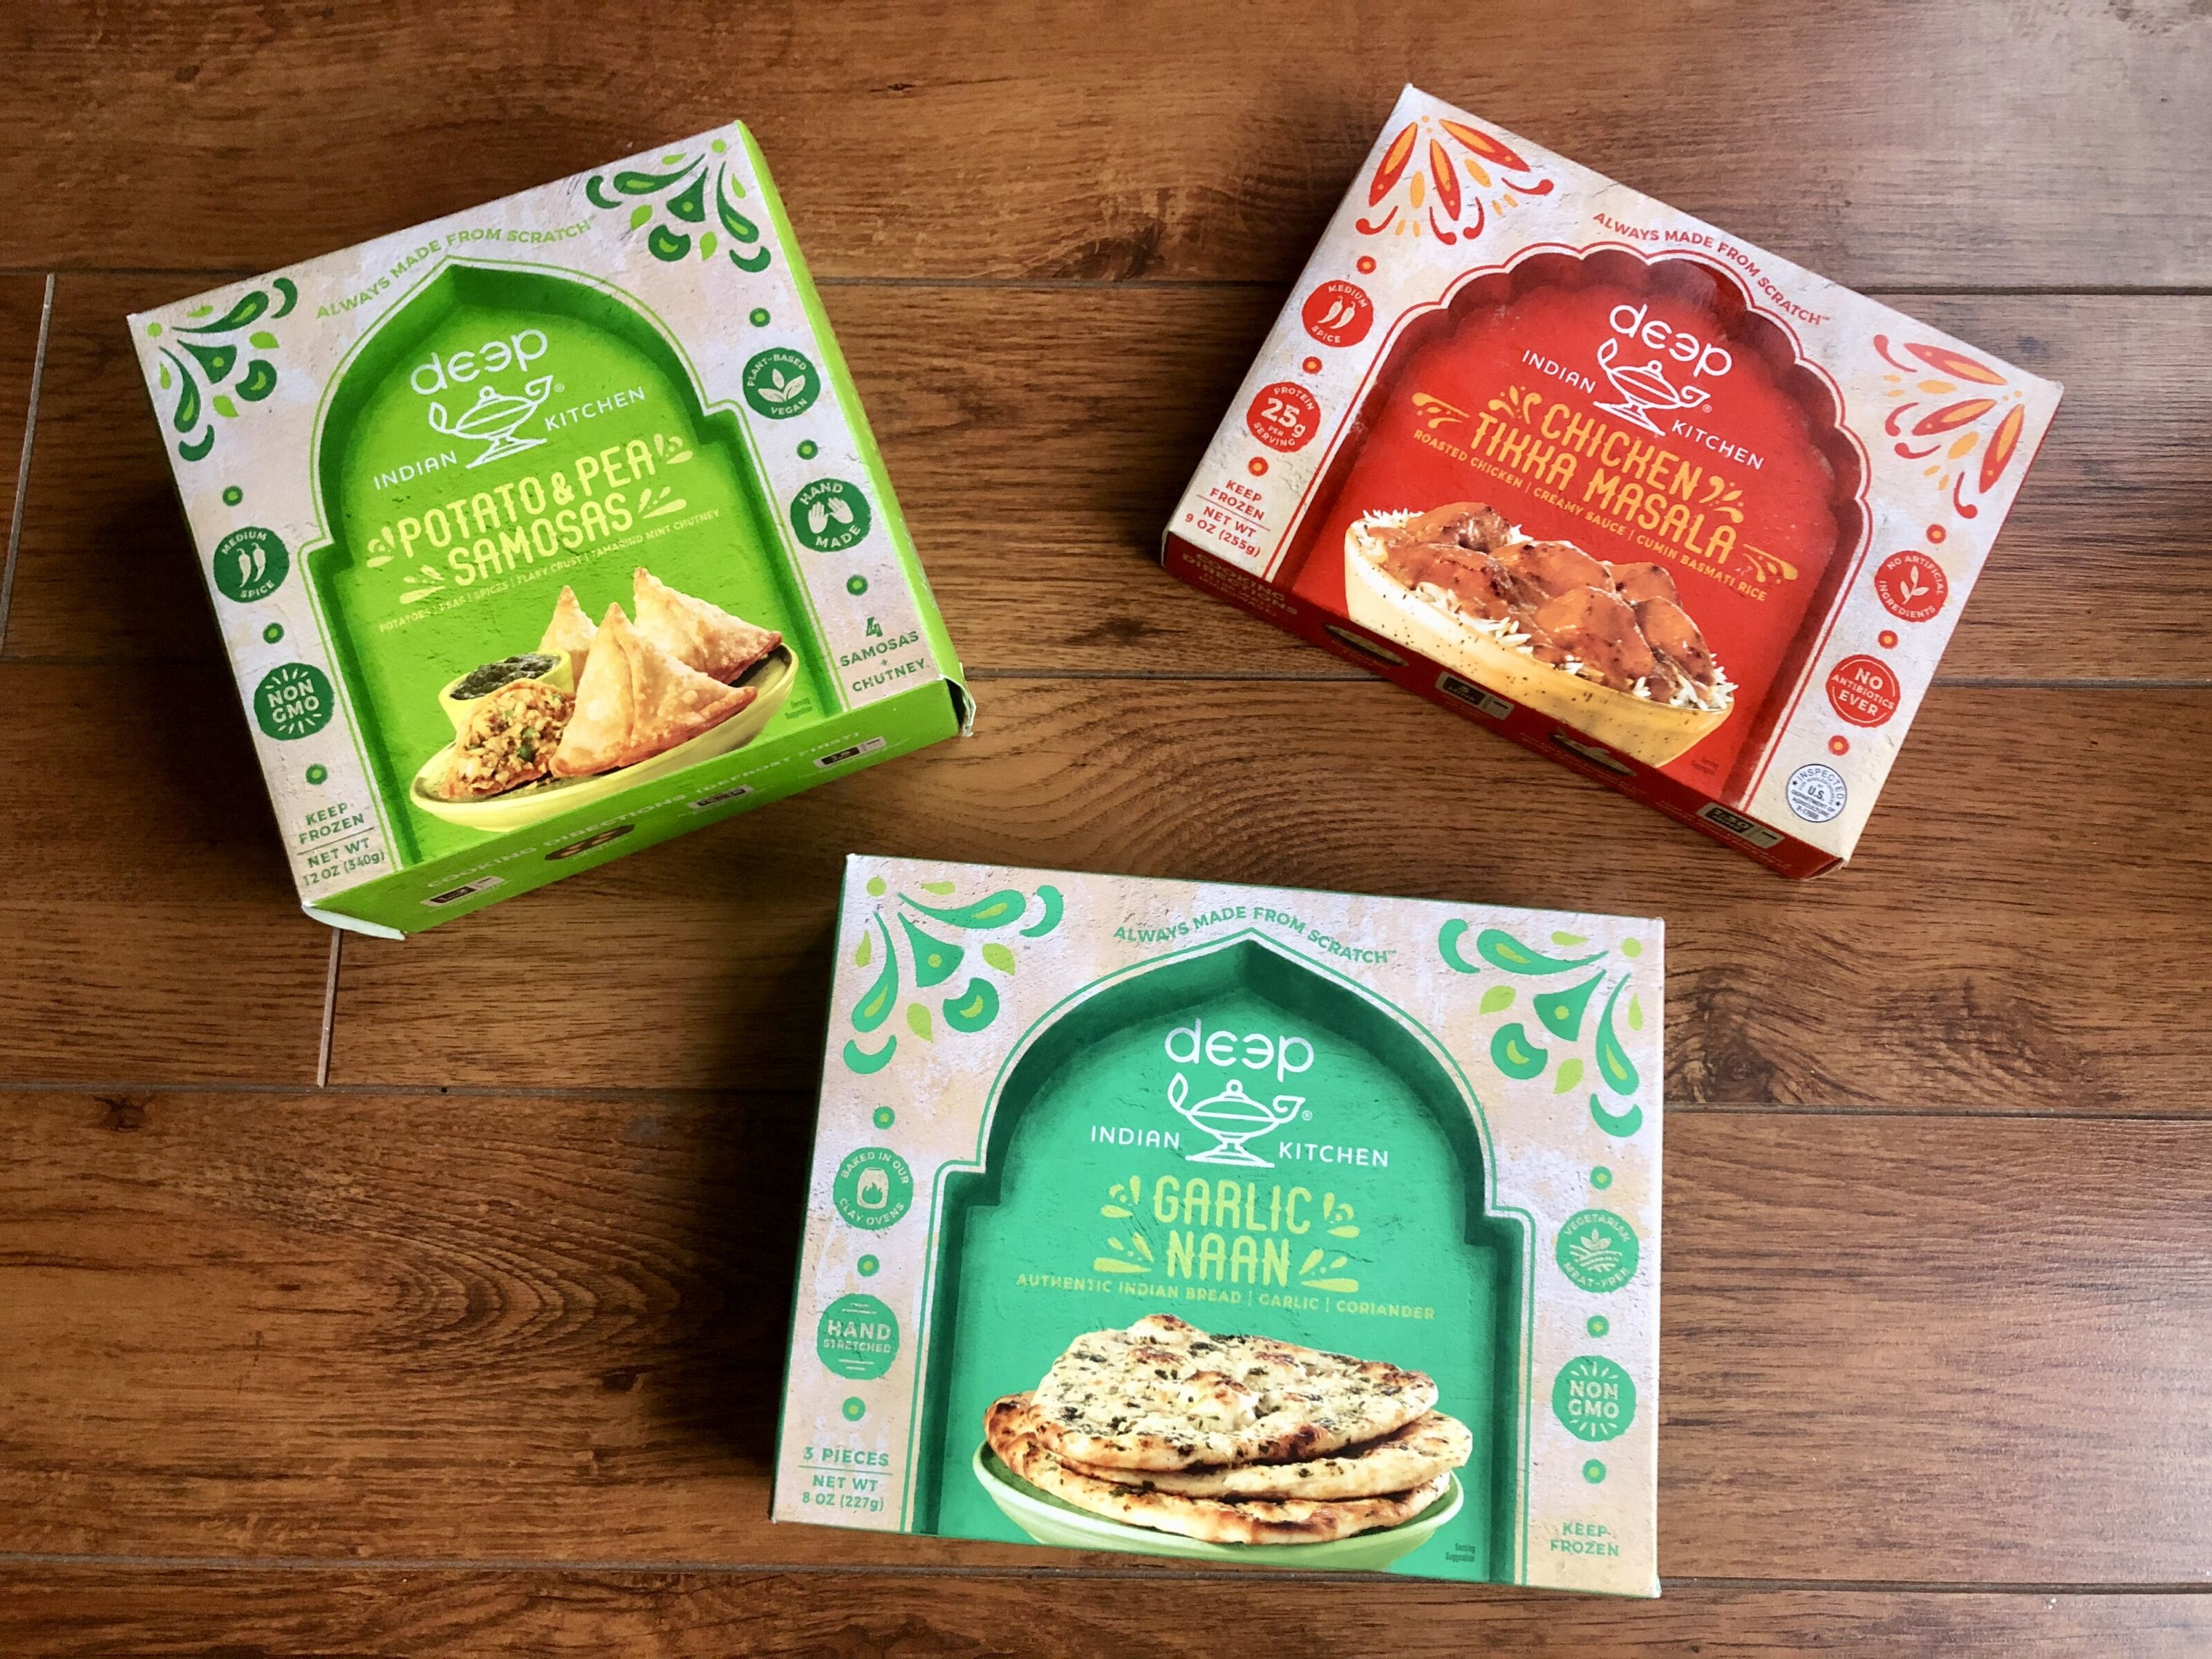 Deep Indian Kitchen review: Is this frozen food any good?